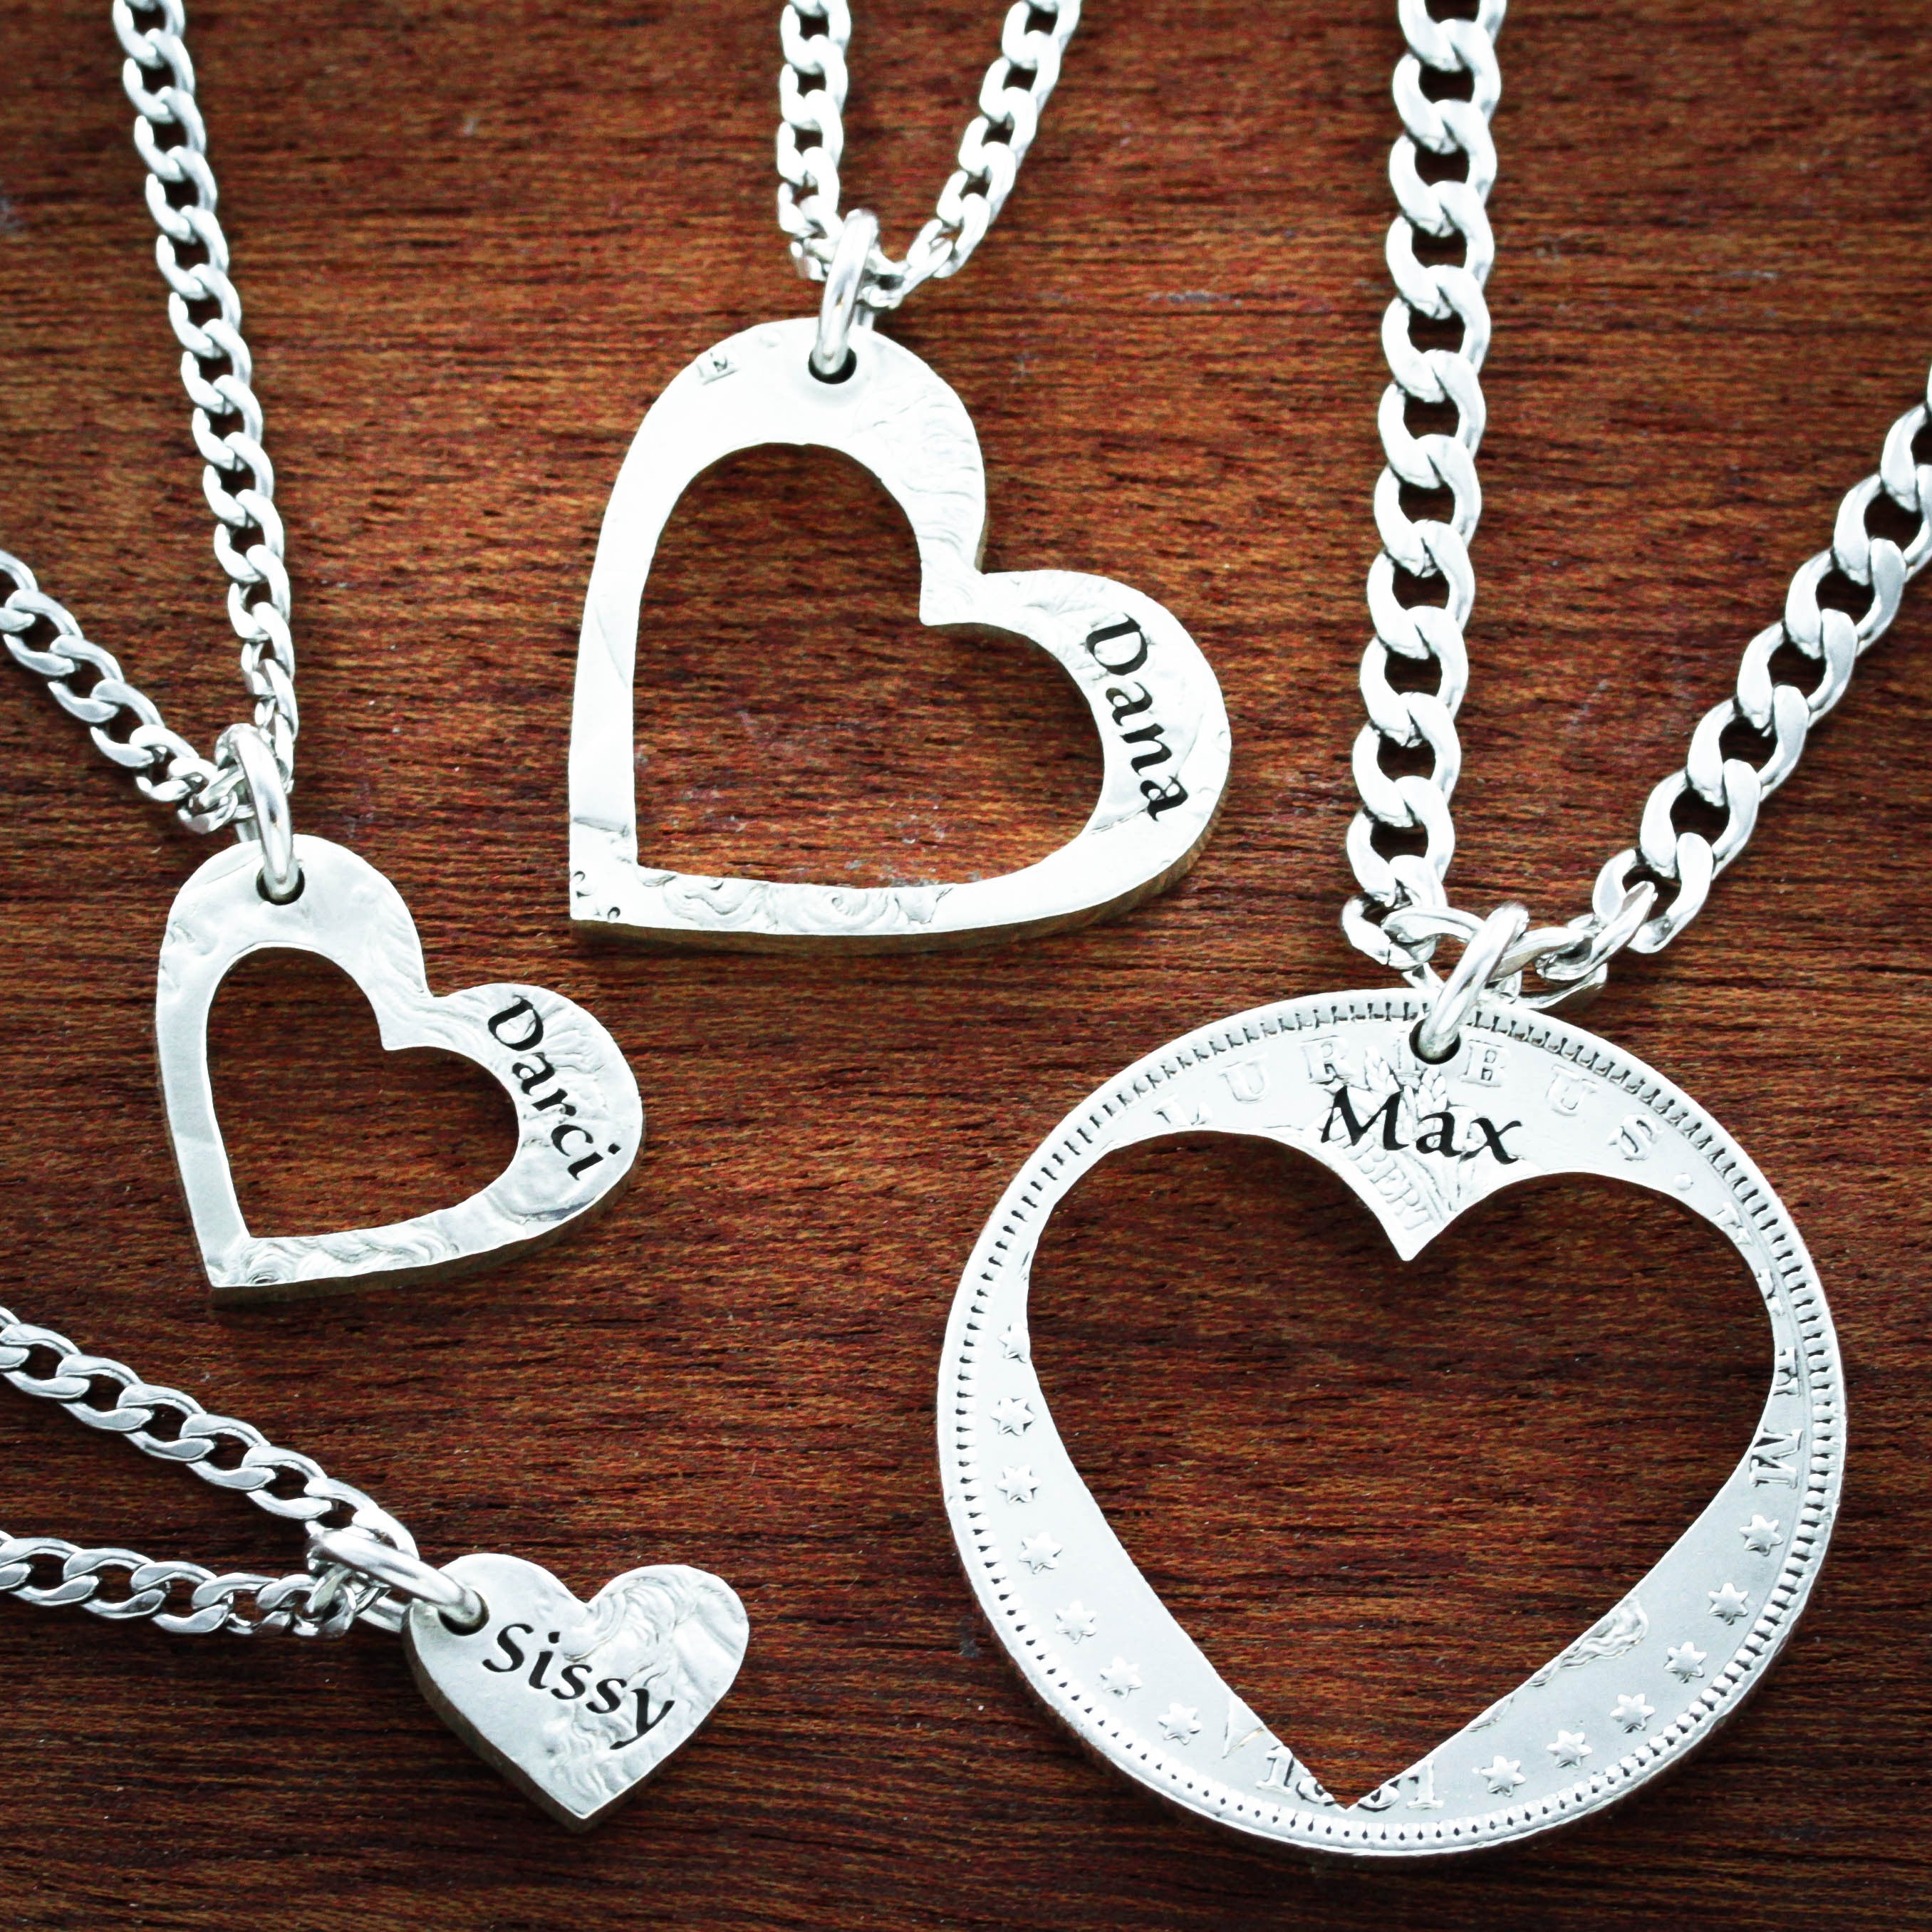 name signature and engraved engravable necklace personalised sides jewellery accessories on elvie long gold chains